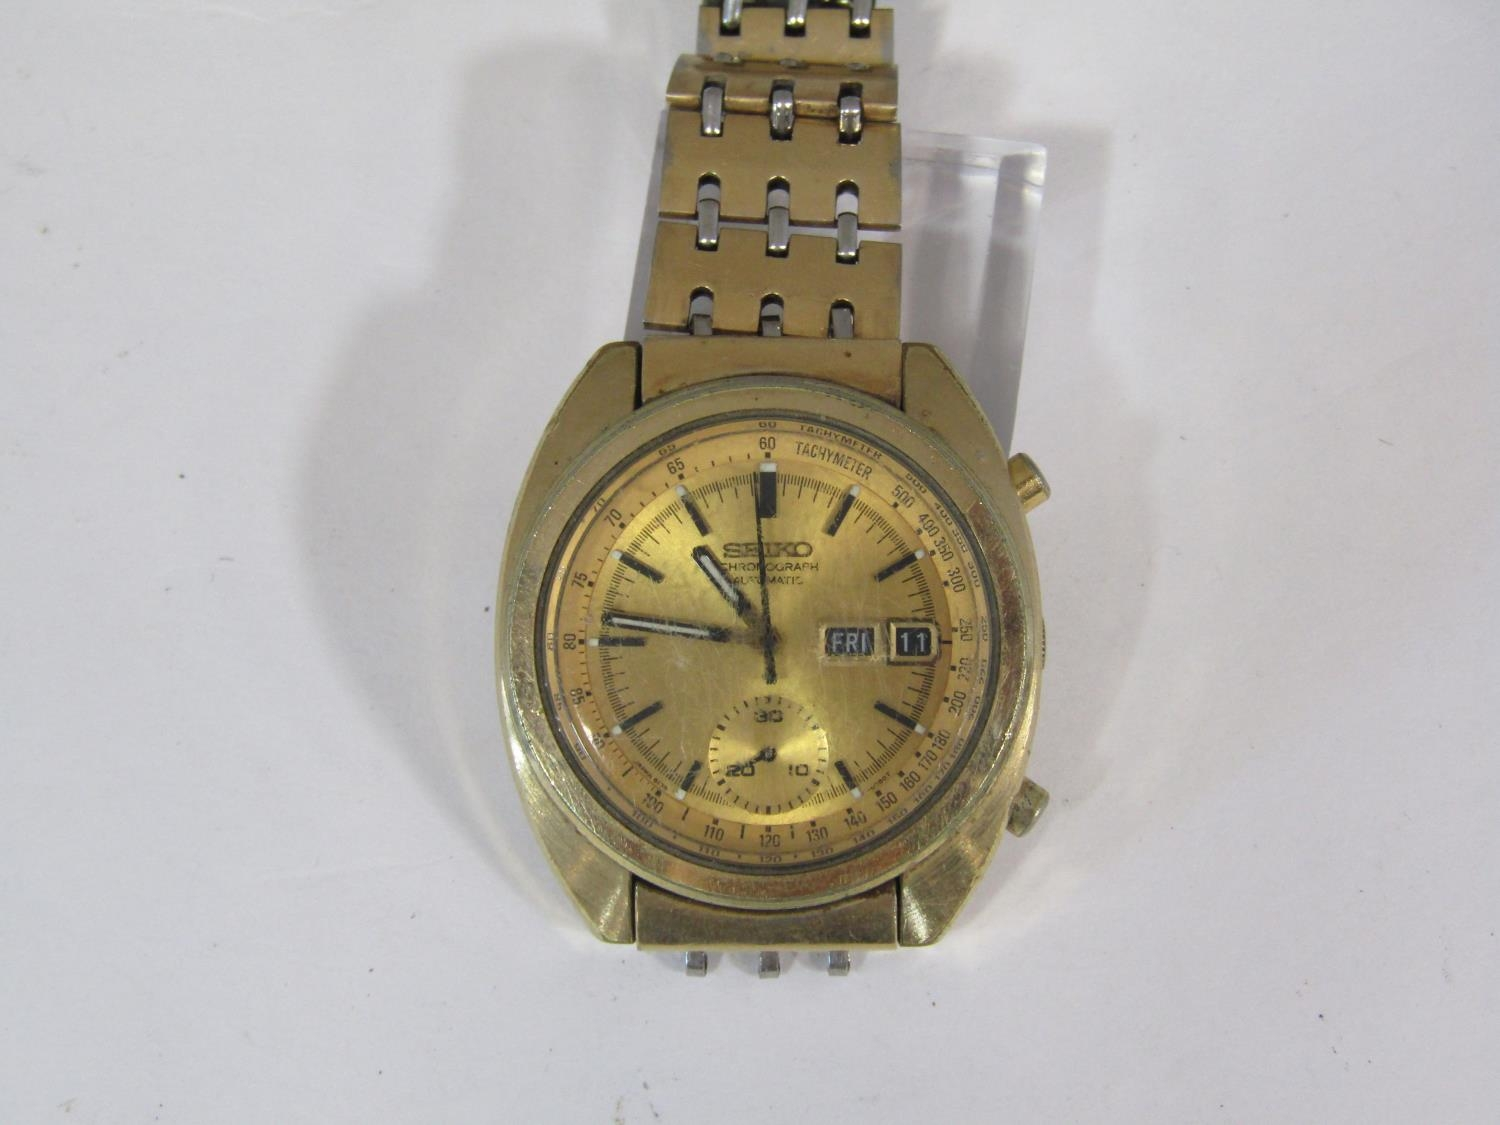 Vintage gent's Seiko chronograph automatic gold plated wristwatch, the gilt dial with black baton - Image 3 of 3